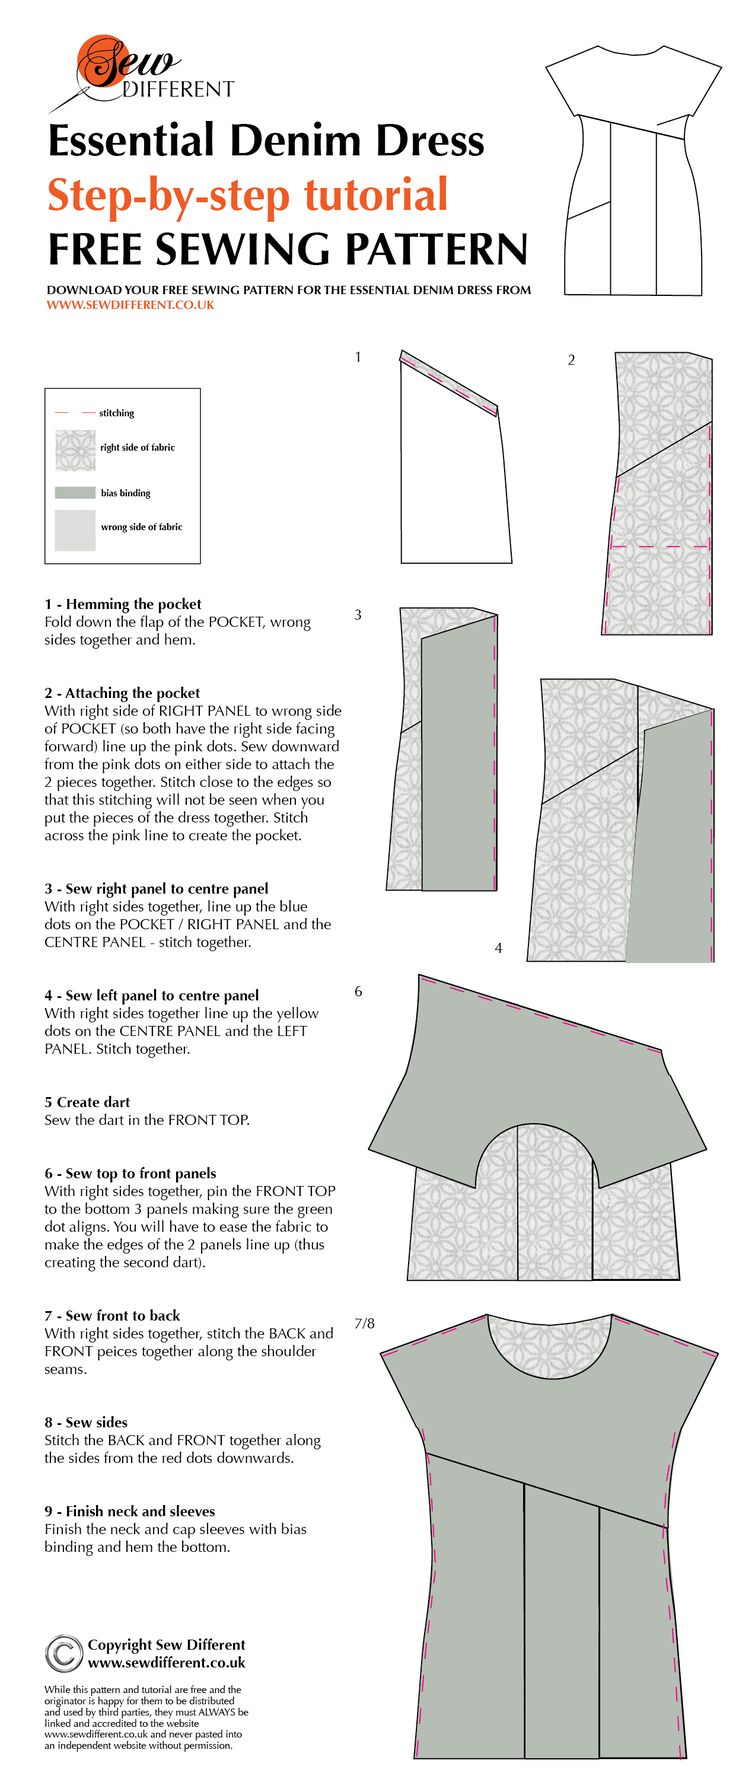 Step-by-step tutorial with diagrams for the Essential Denim Dress. FREE sewing pattern and post full of ideas, photos, tips and fabric info to go with it.